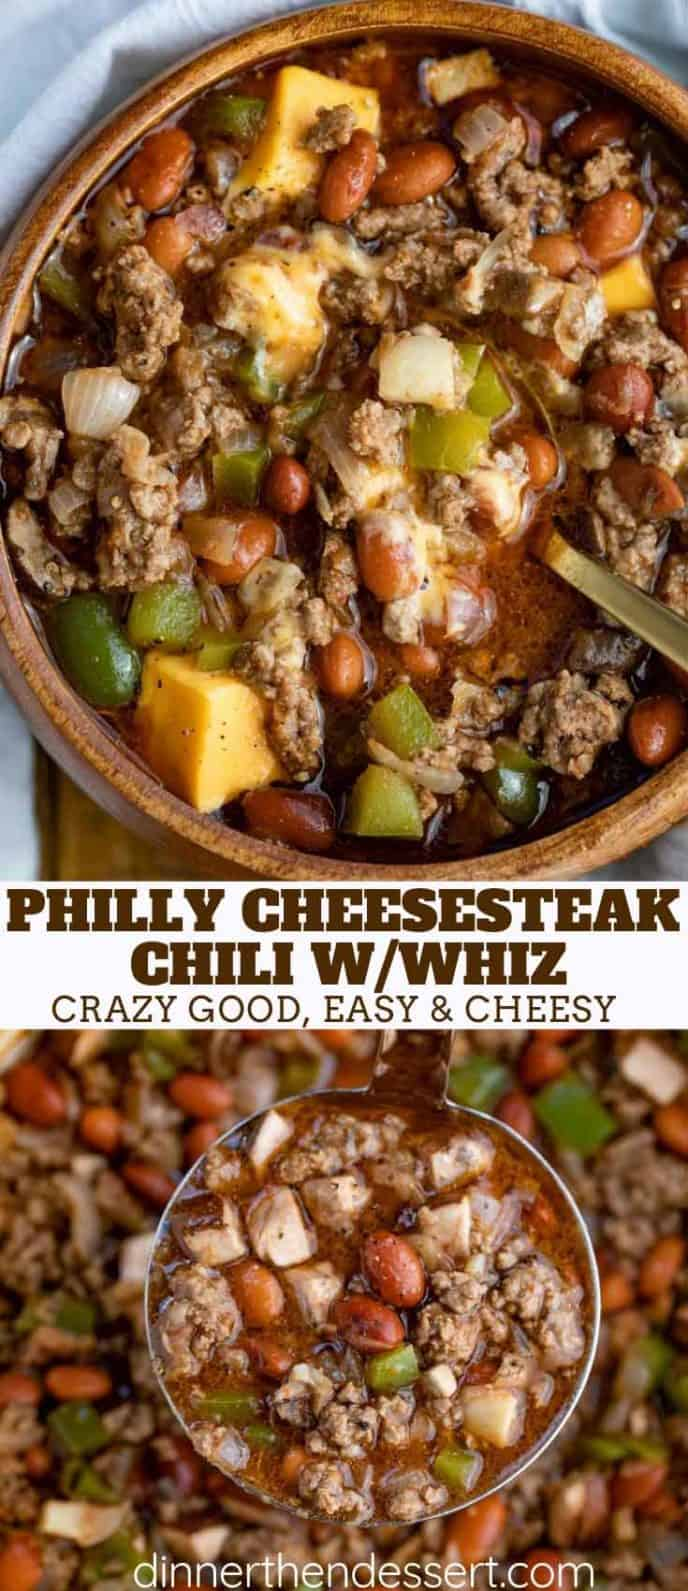 Philly Cheesesteak Ground Beef Chili